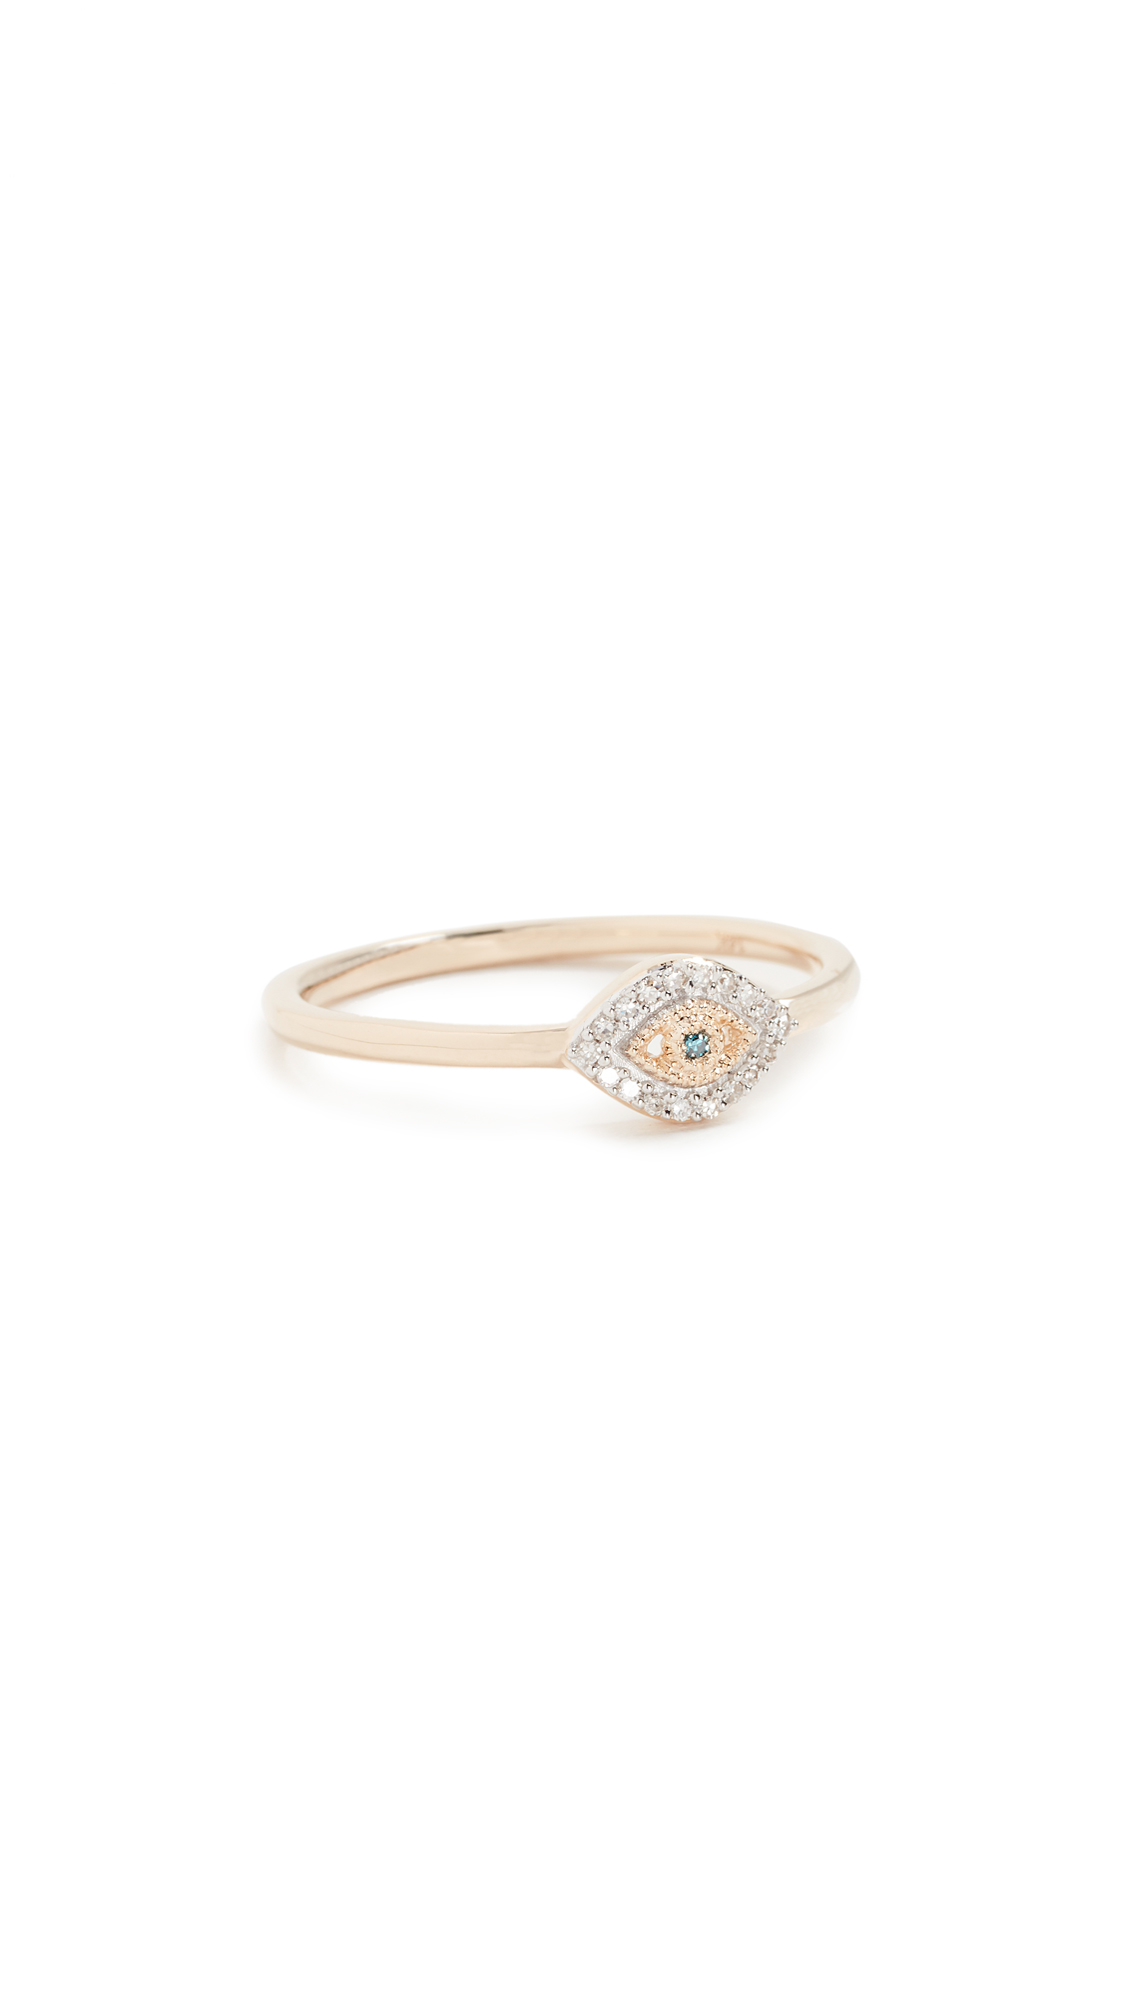 ADINA REYTER 14K Gold Super Tiny Pave Evil Eye Ring in Yellow Gold